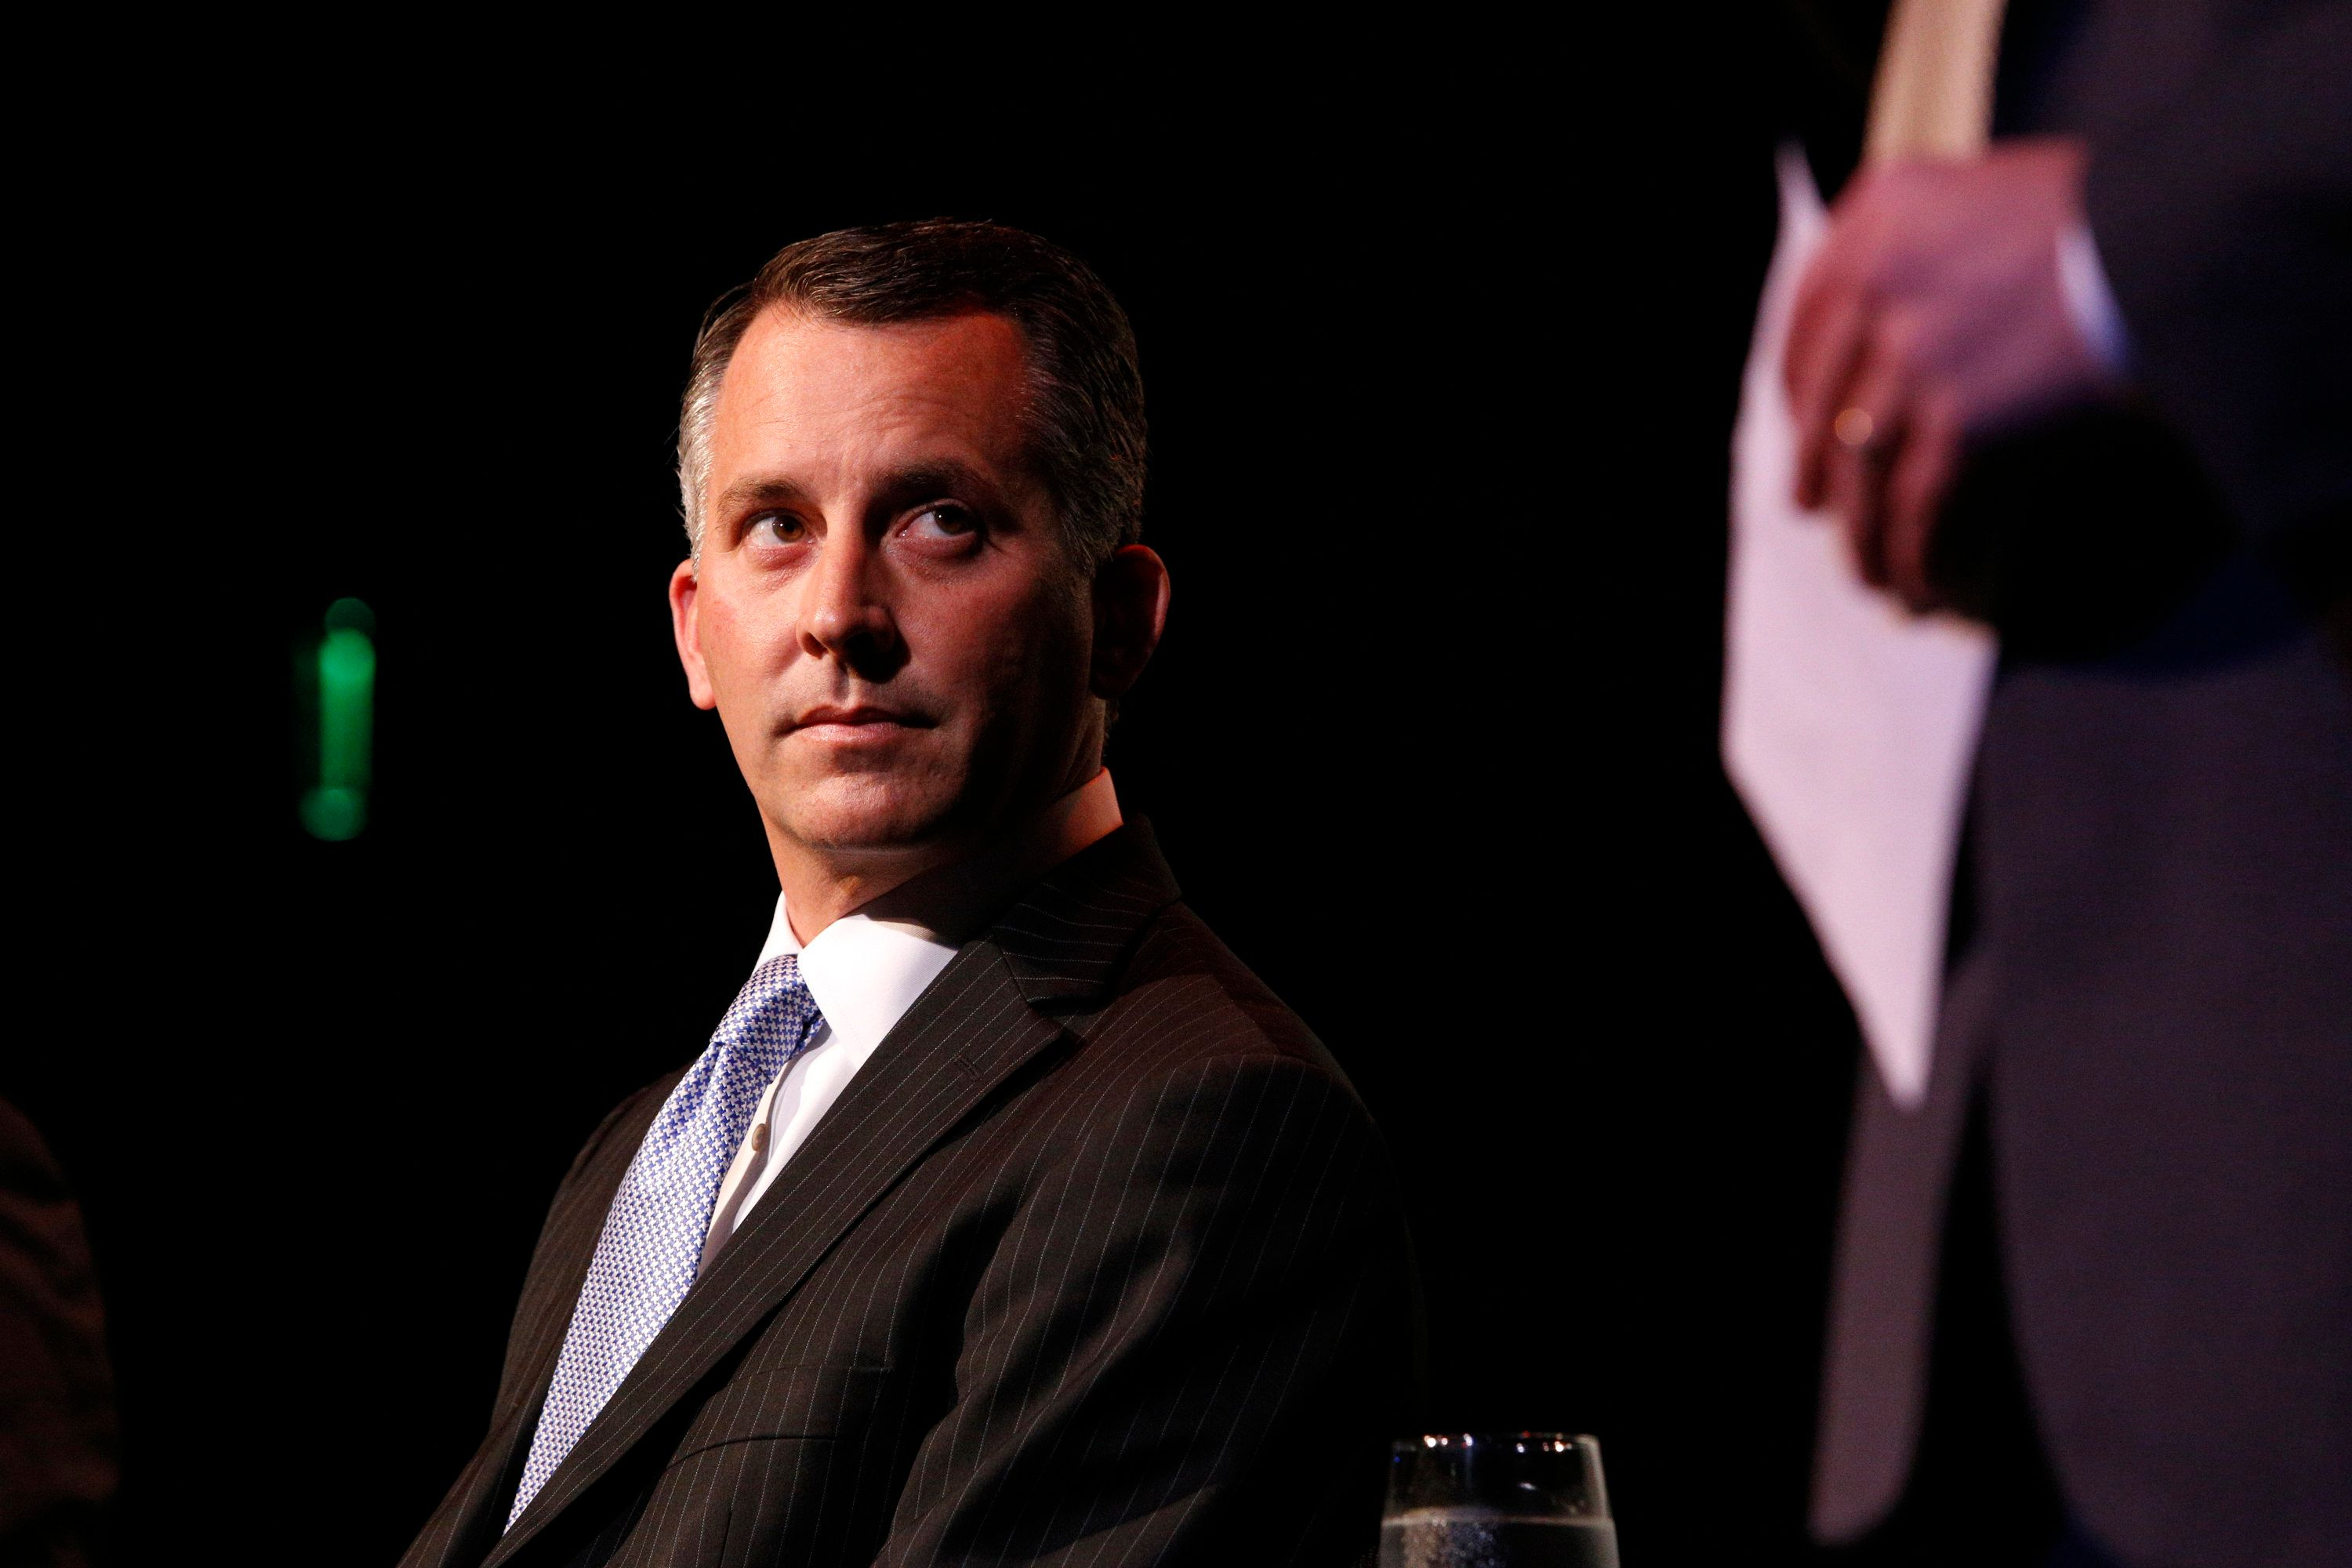 Republican David Jolly waits to speak during a candidate forum with Democrat Alex Sink and Libertarian Lucas Overby, all candidates for Florida's congressional District 13, in Clearwater, Florida, February 25, 2014. Sink and Jolly are in a race for a special election to be held on March 11, 2014 to elect a member of the United States House of Representatives to replace the seat of the late Republican Congressman Bill Young.   REUTERS/Brian Blanco  (UNITED STATES - Tags: POLITICS ELECTIONS)